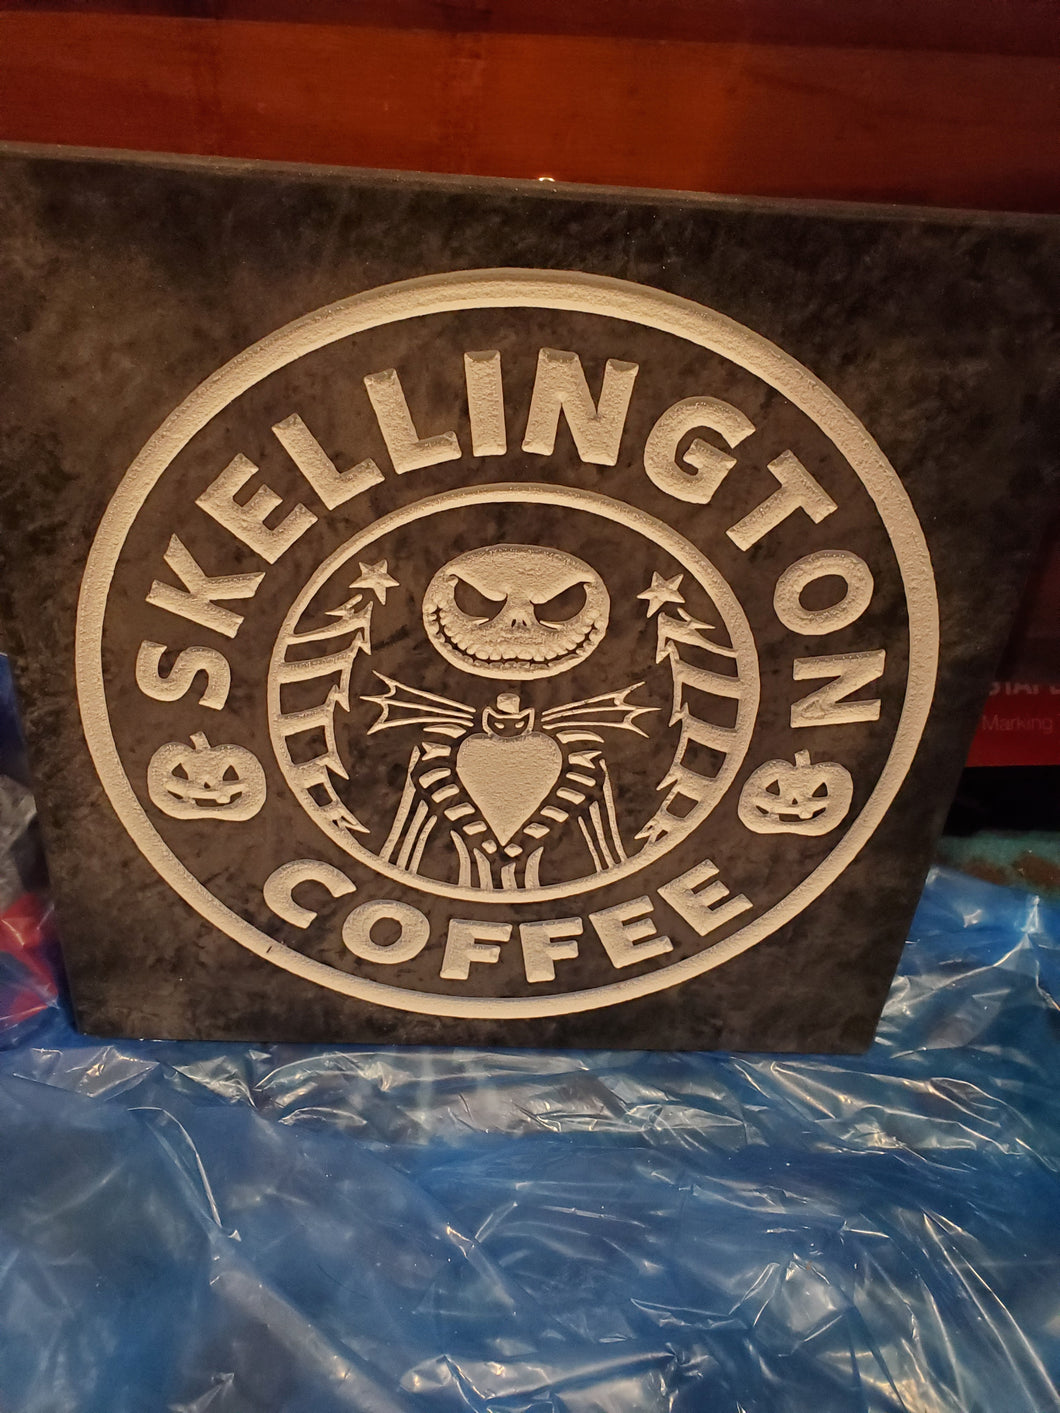 Skellington coffee